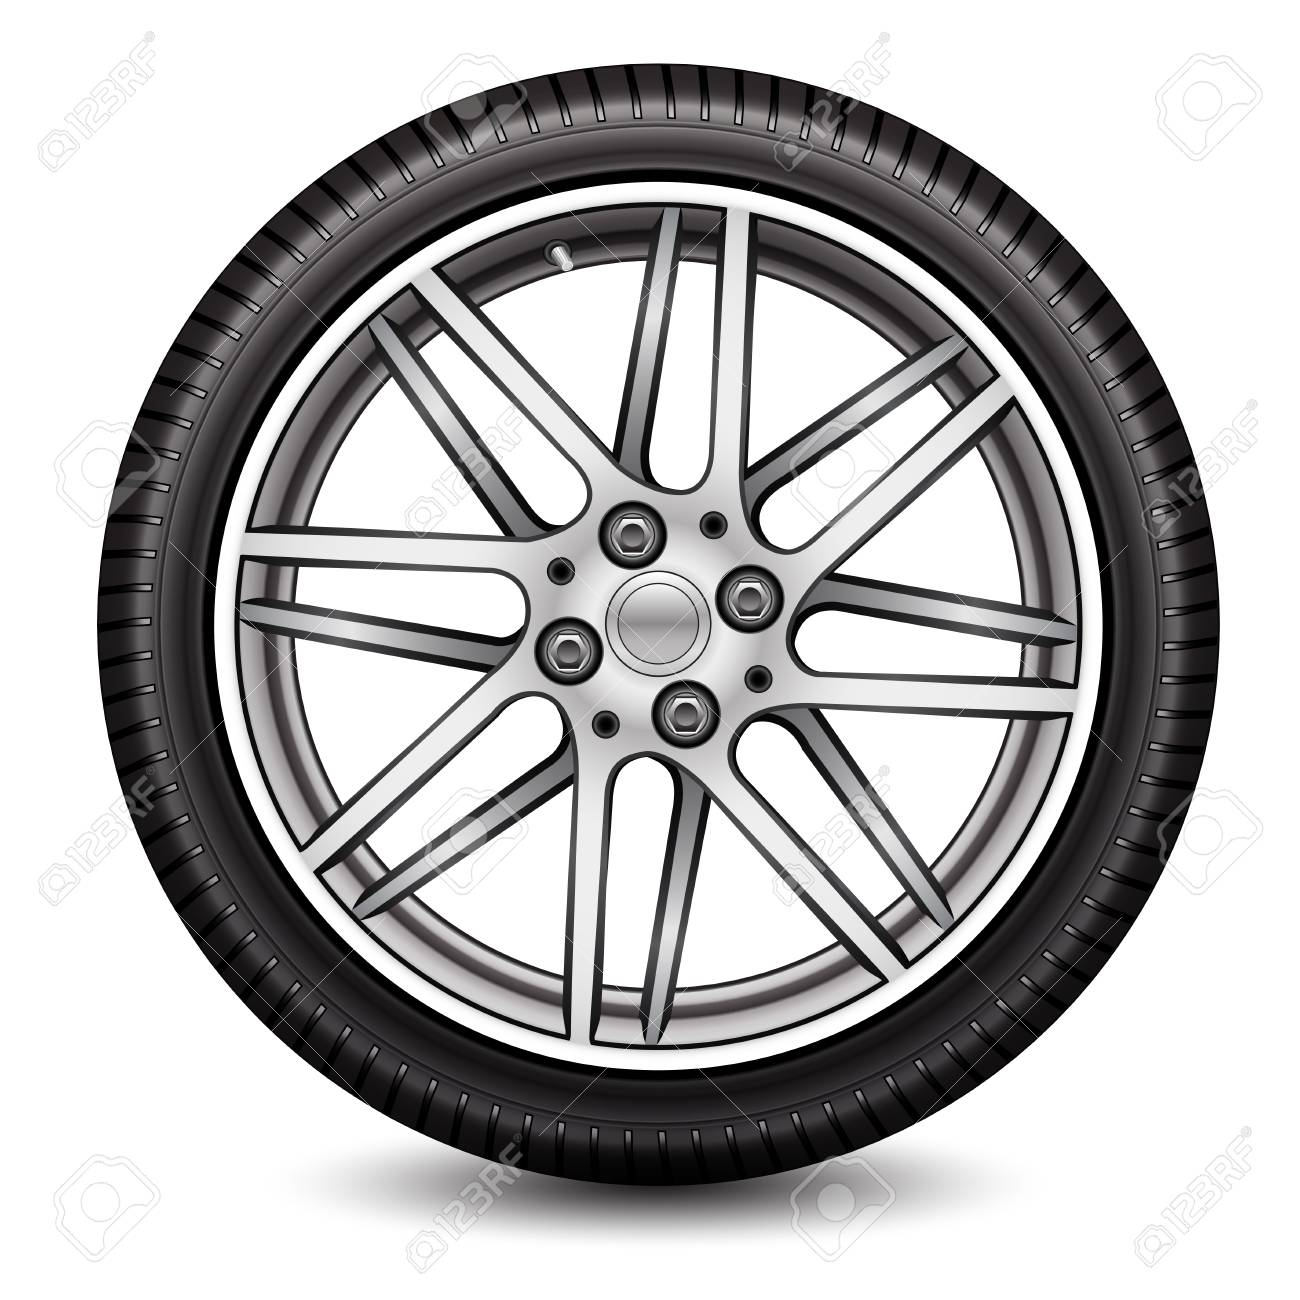 1300x1300 Radial Wheel Car Alloy With Tire On White Background Vector